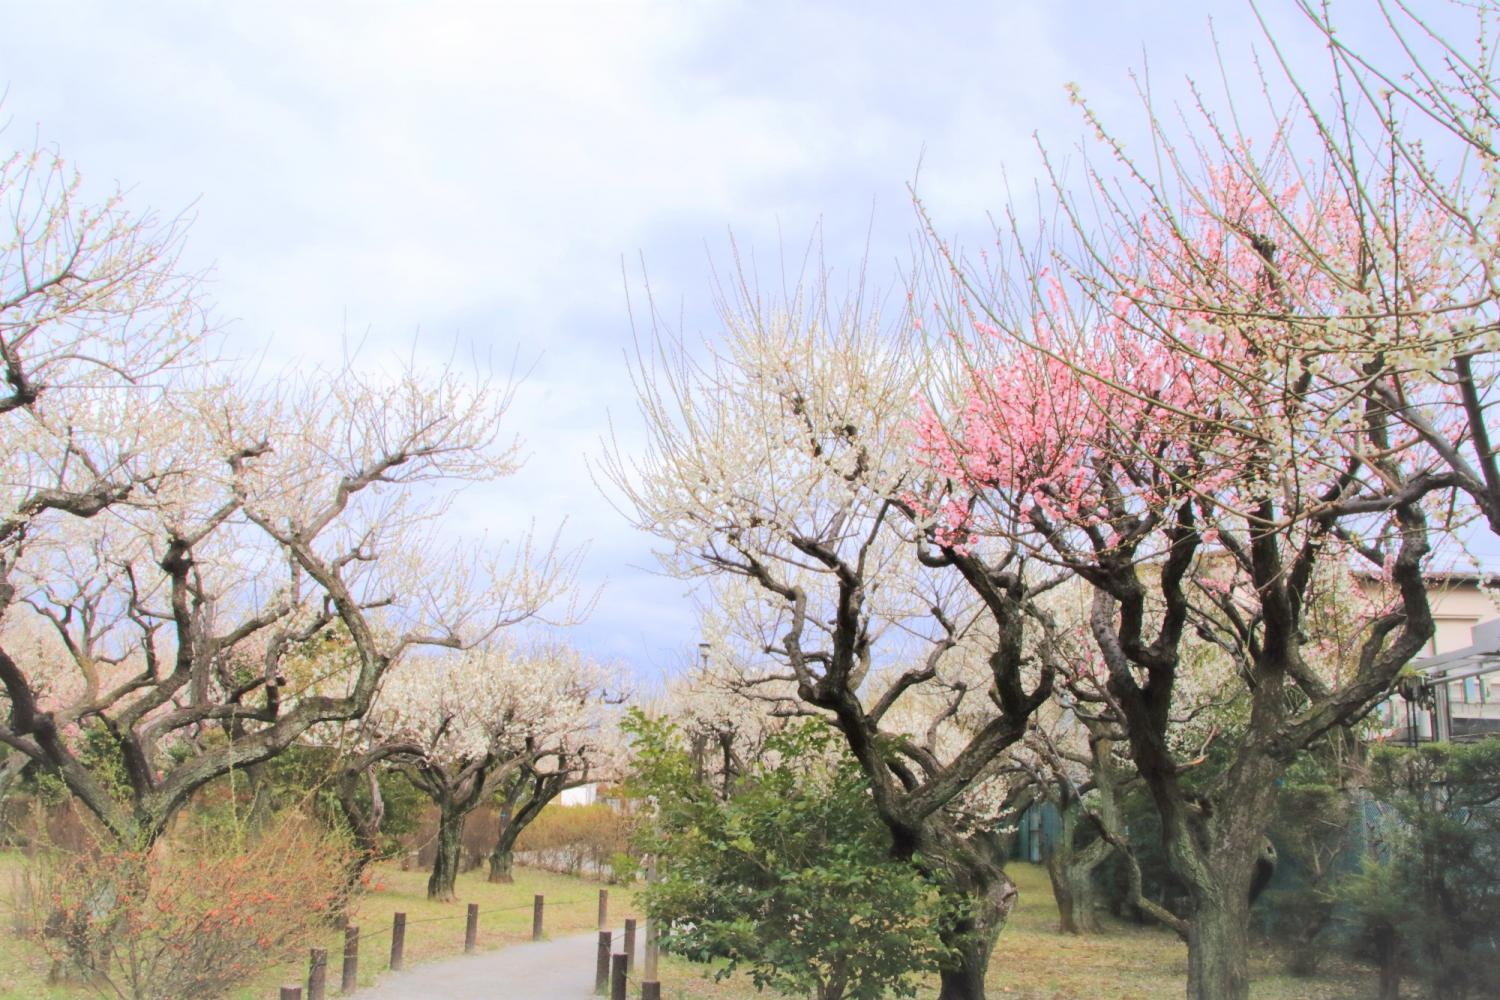 nerimanoneri walk A. Oizumi animation course, scenery course of B.C. Tagara Bairin, nerimano agriculture [we close, and application must arrive by Friday, February 7]